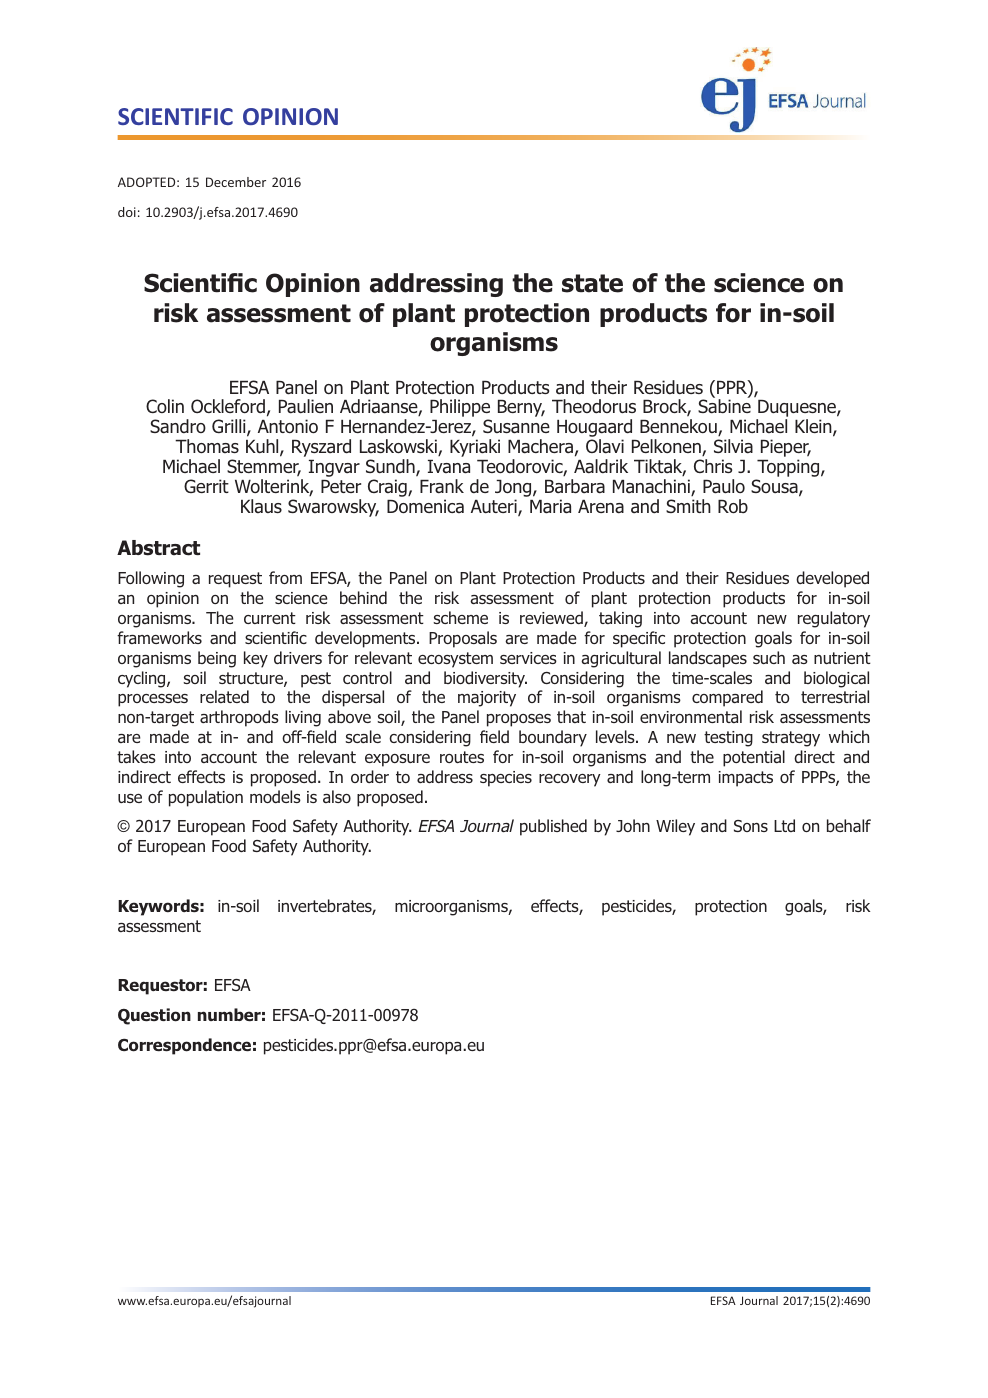 Scientific Opinion addressing the state of the science on risk